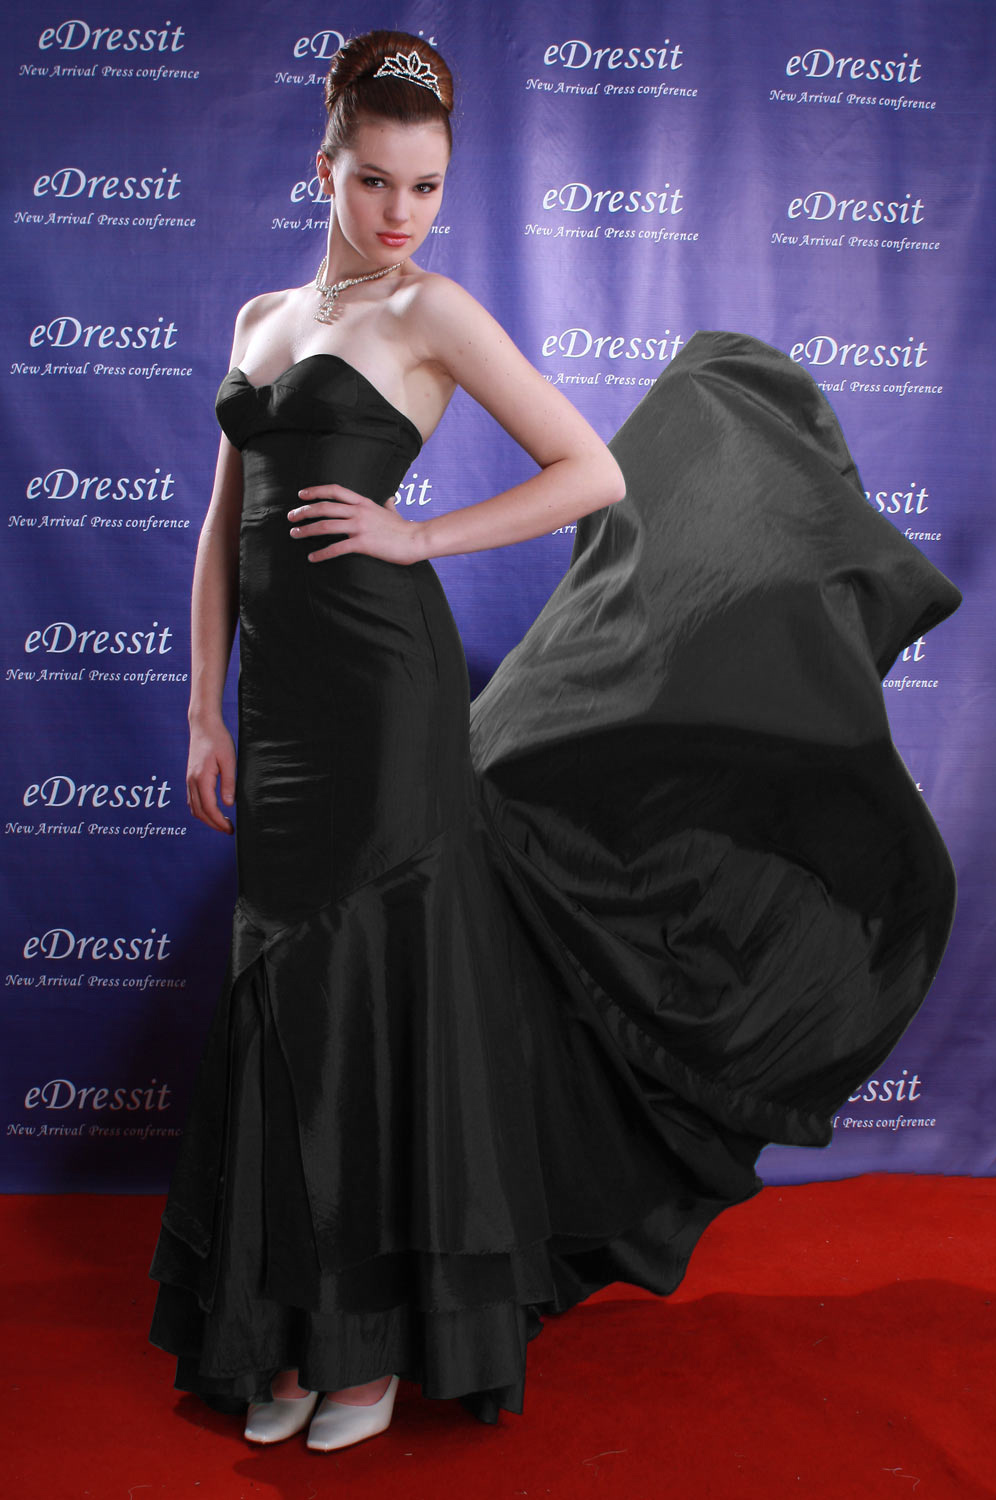 eDressit taffeta party dress (00084504s)